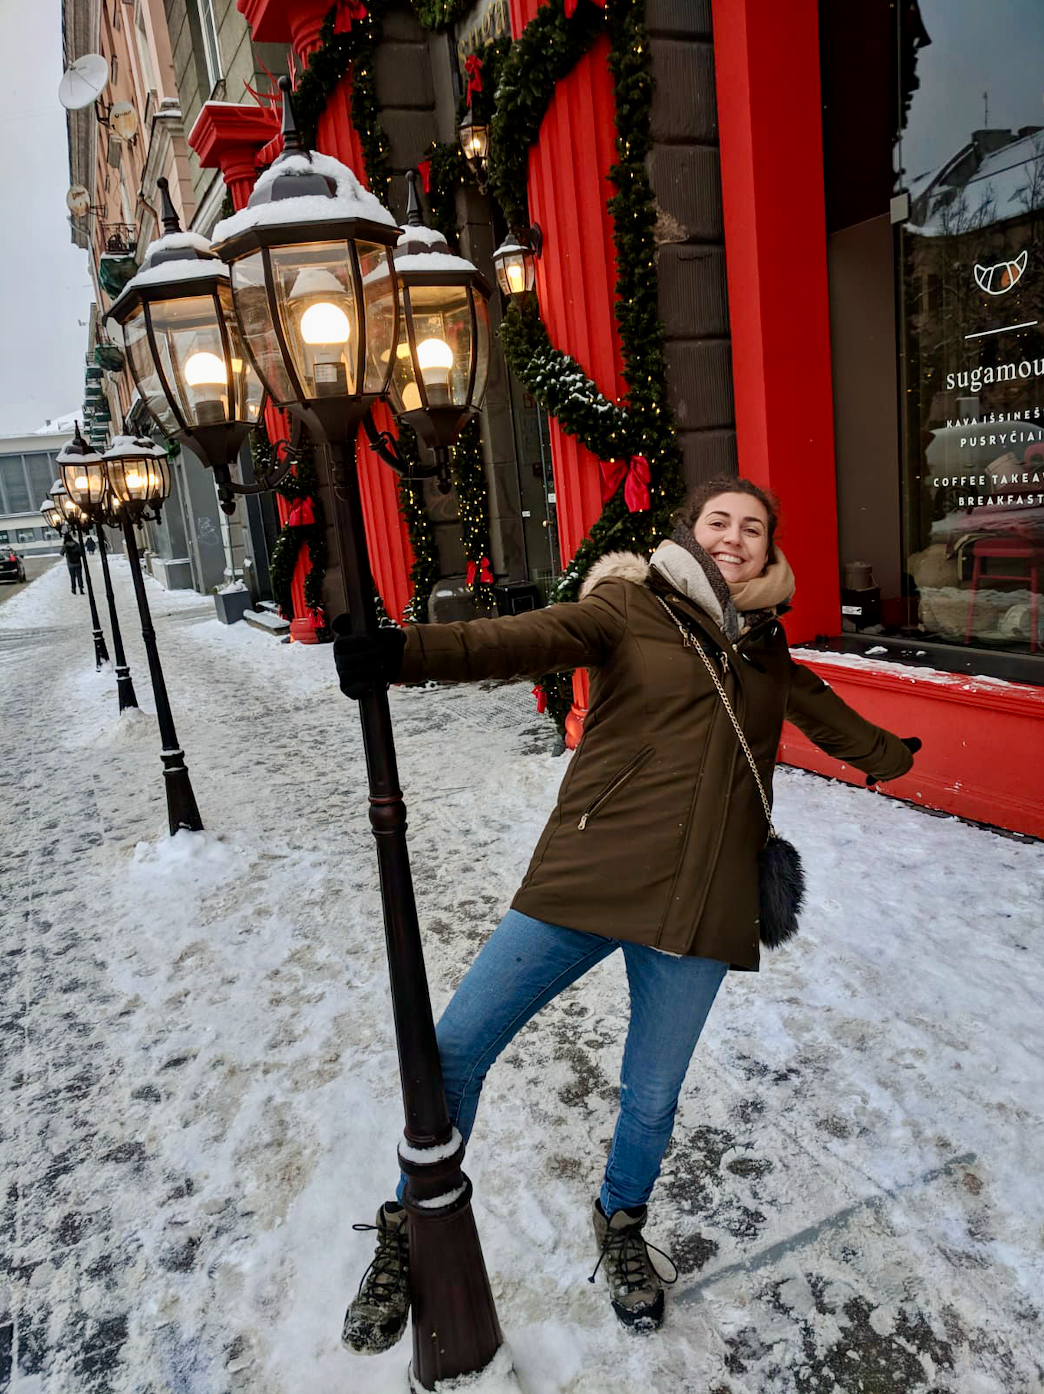 Best restaurants in Vilnius: Nell outside Sugamour, swinging around a lamp post and smiling at the camera, surrounded by snow.